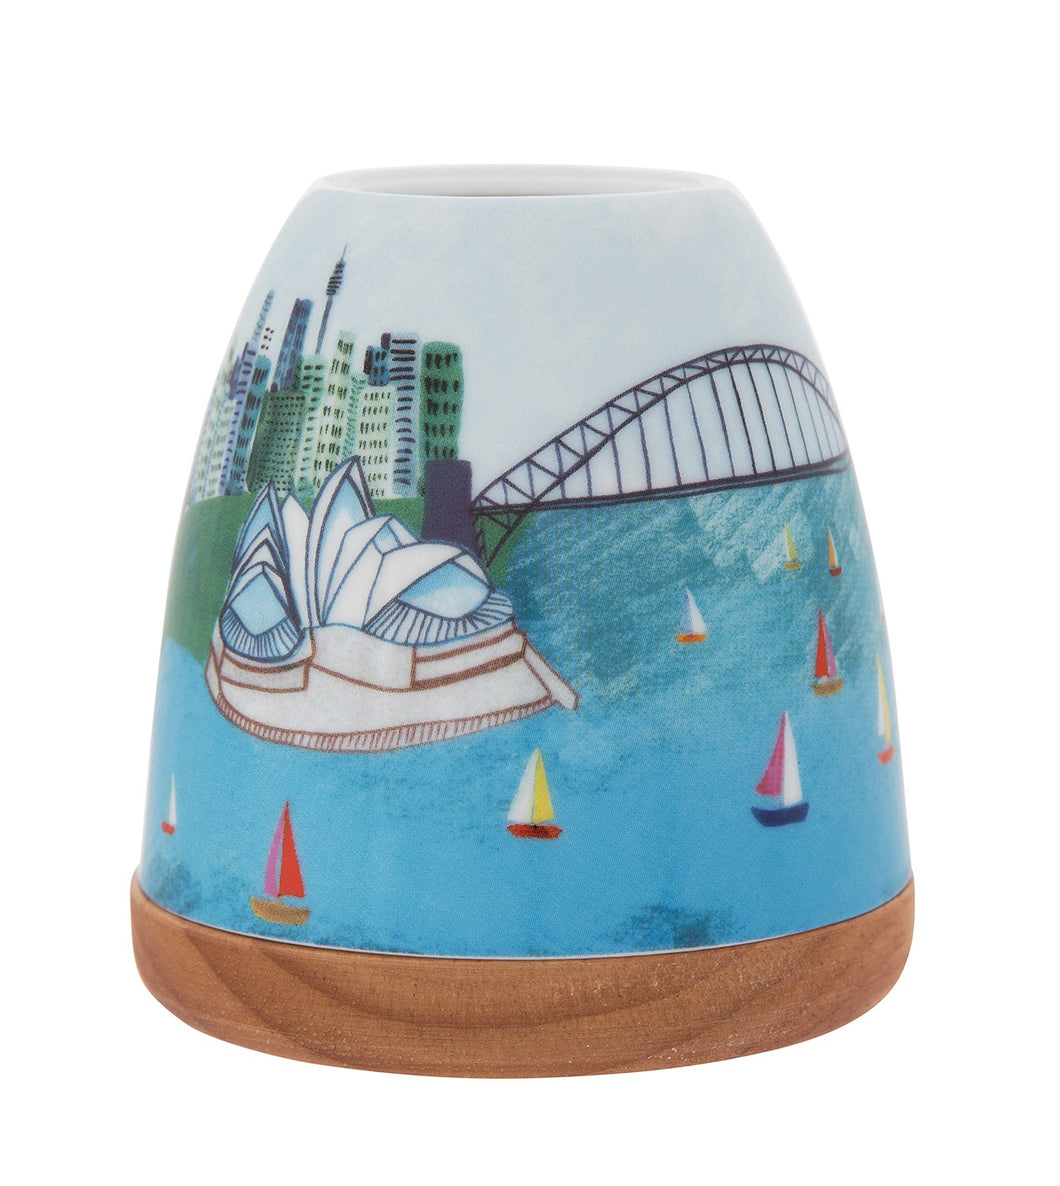 Sydney Harbour Minikin Tealight Holder